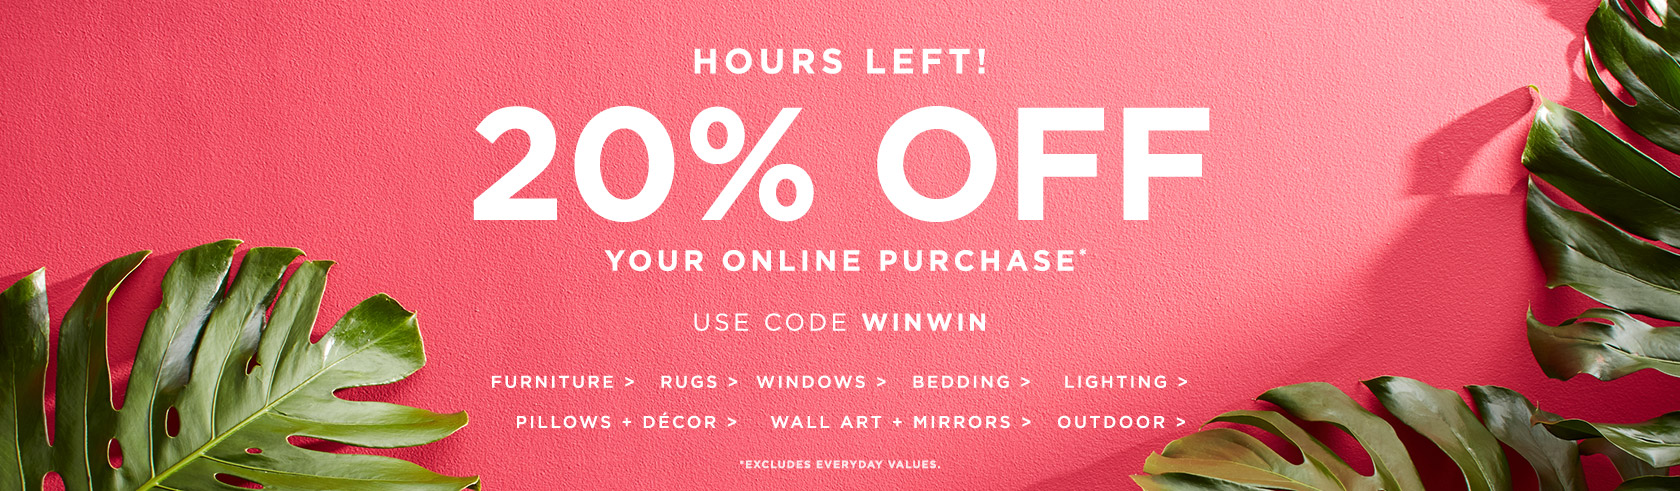 Hours Left! 20% Off Your Online Purchase! Use Code WINWIN